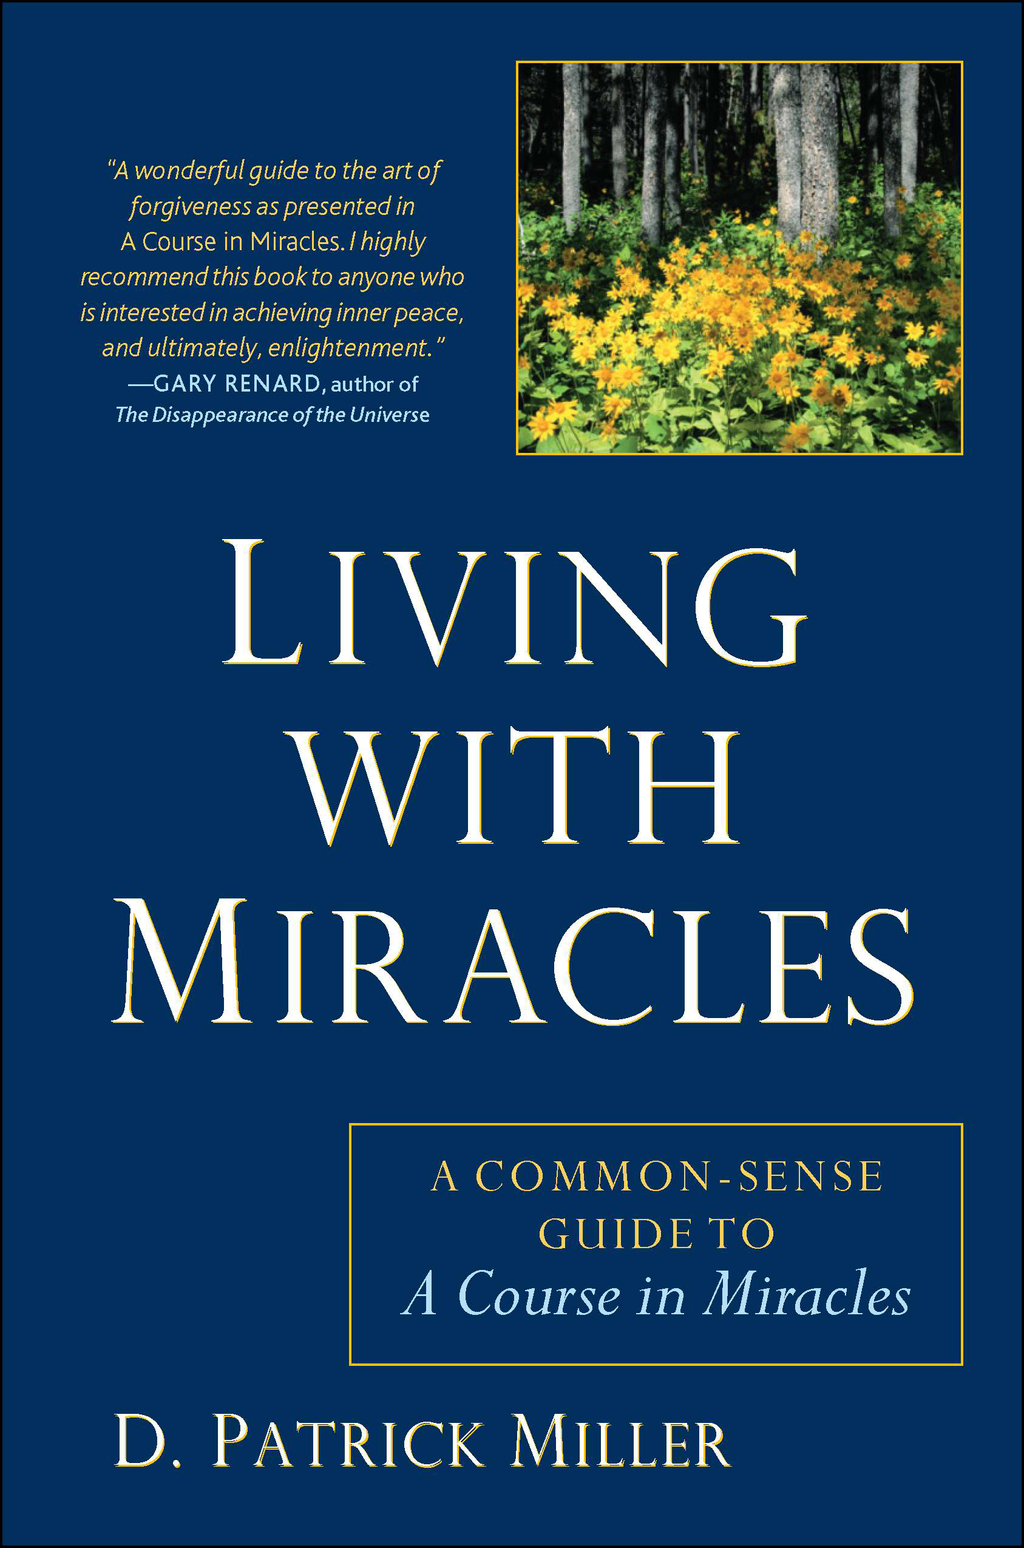 Living with Miracles: A Common-Sense Guide to A Course In Miracles By: D. Patrick Miller